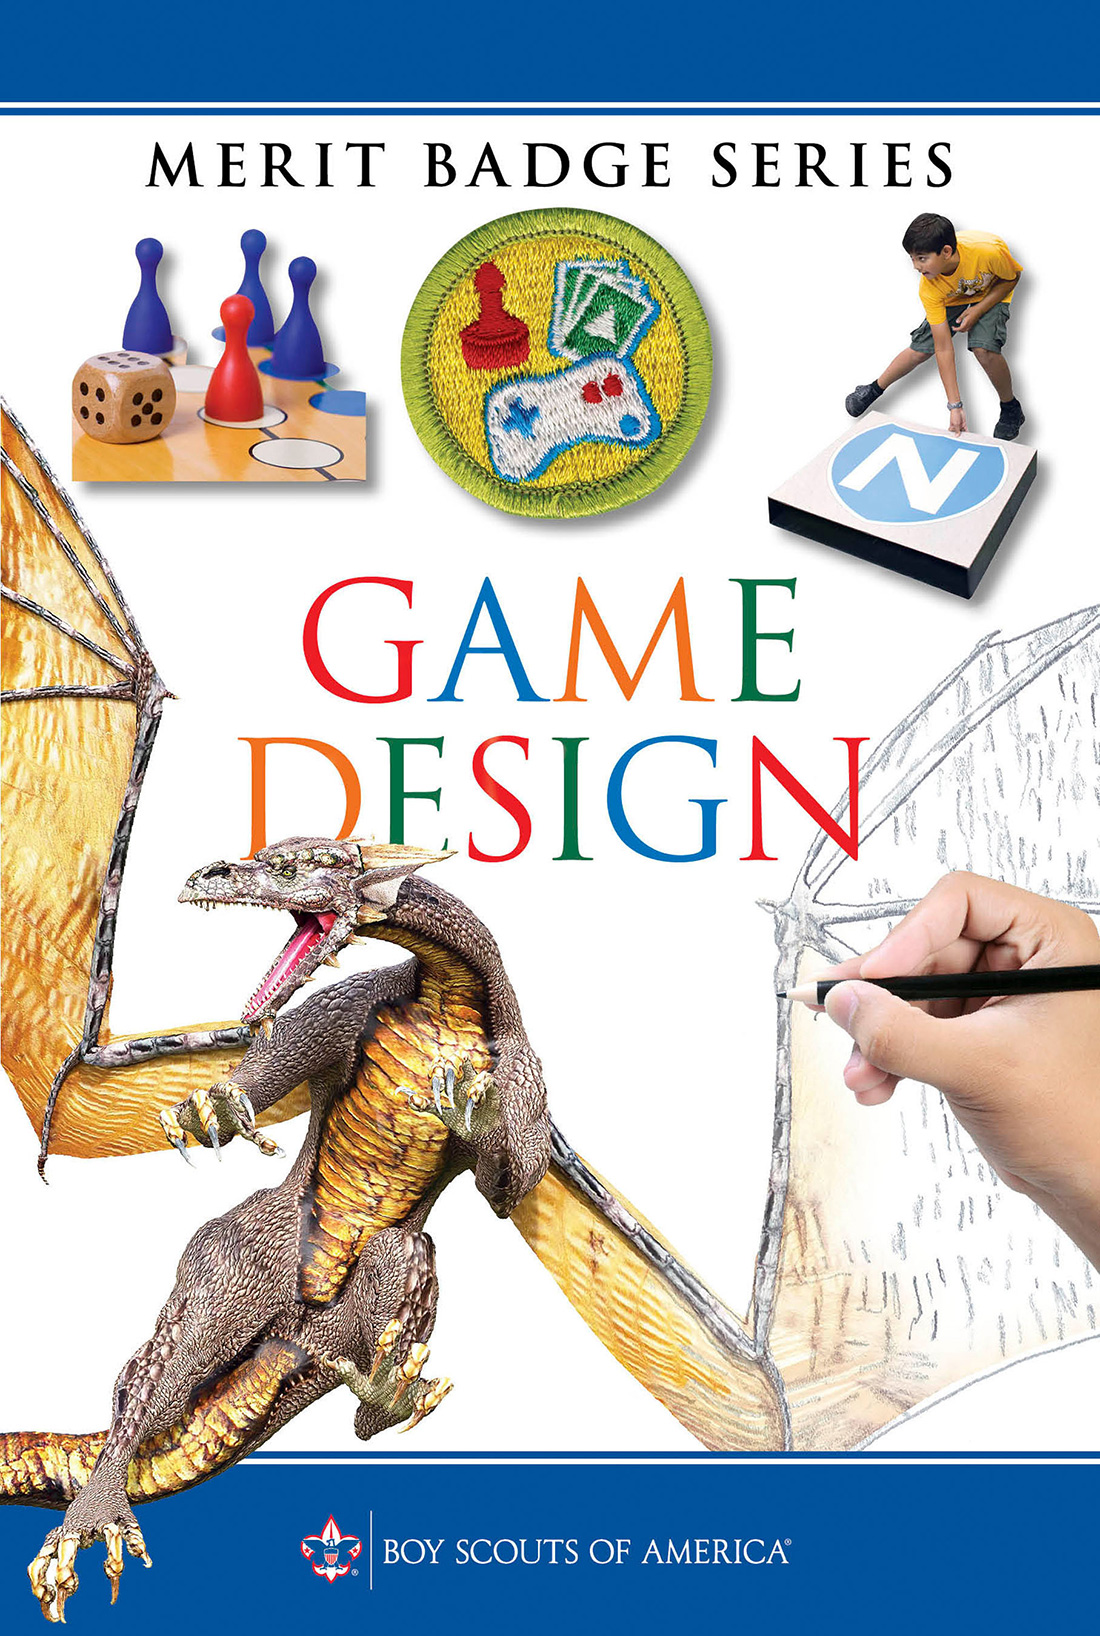 Boy Scouts Of America To Offer Game Design Merit Badge